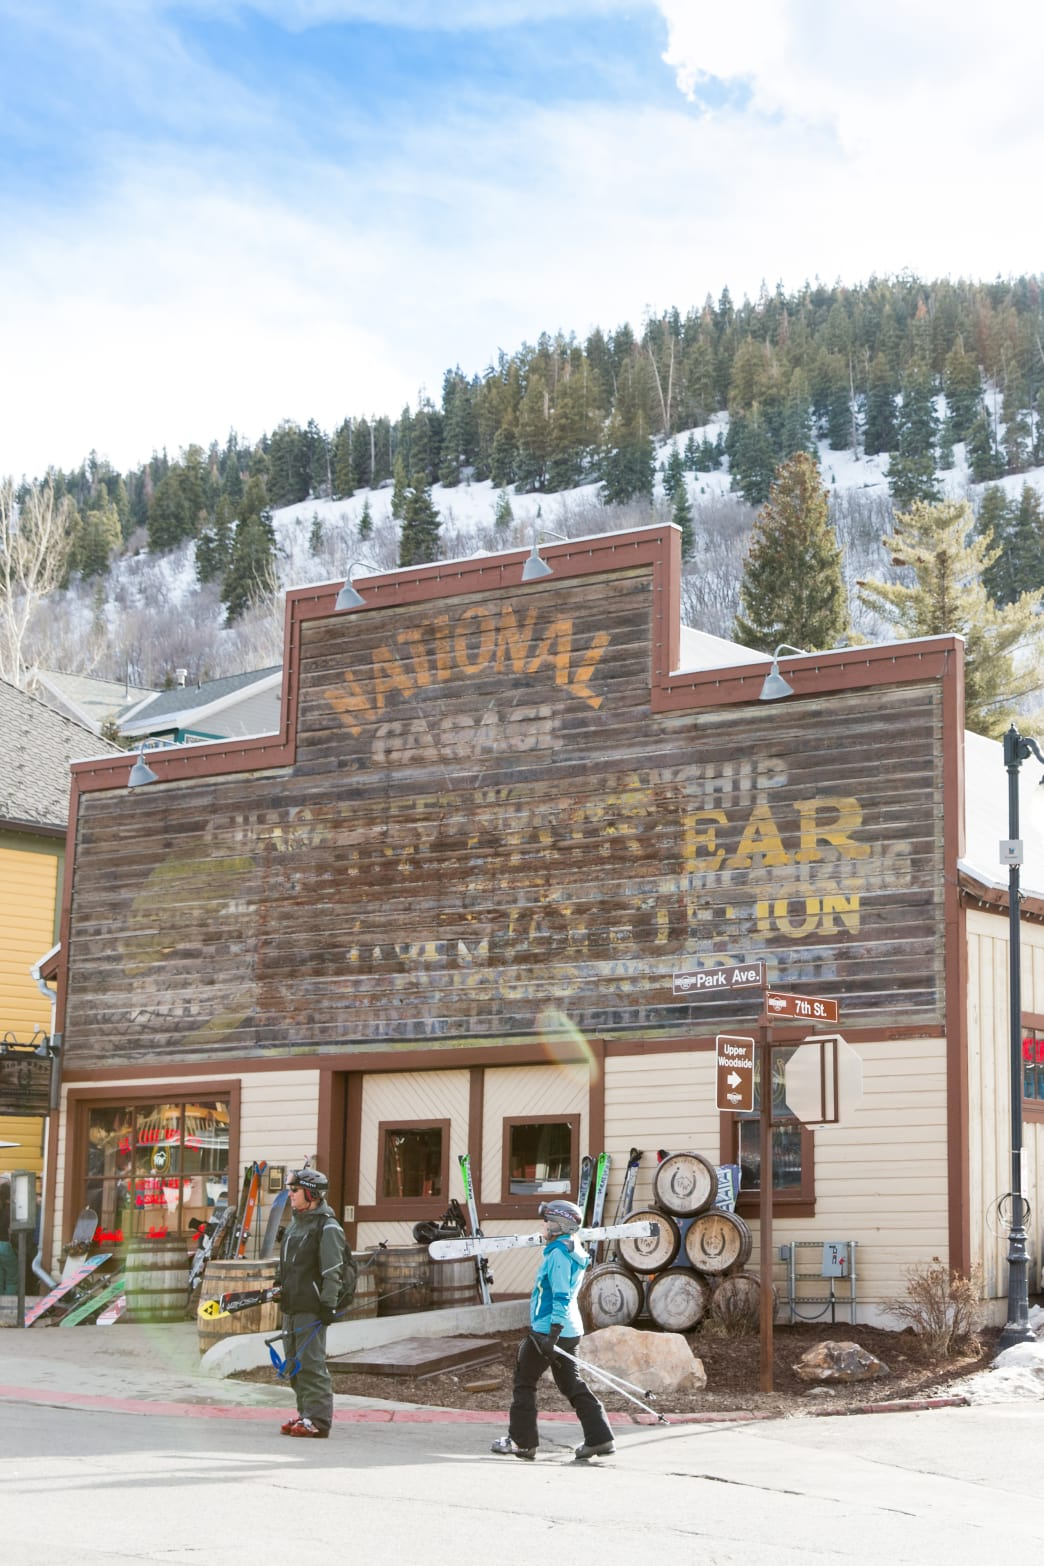 The High West Distillery & Saloon.